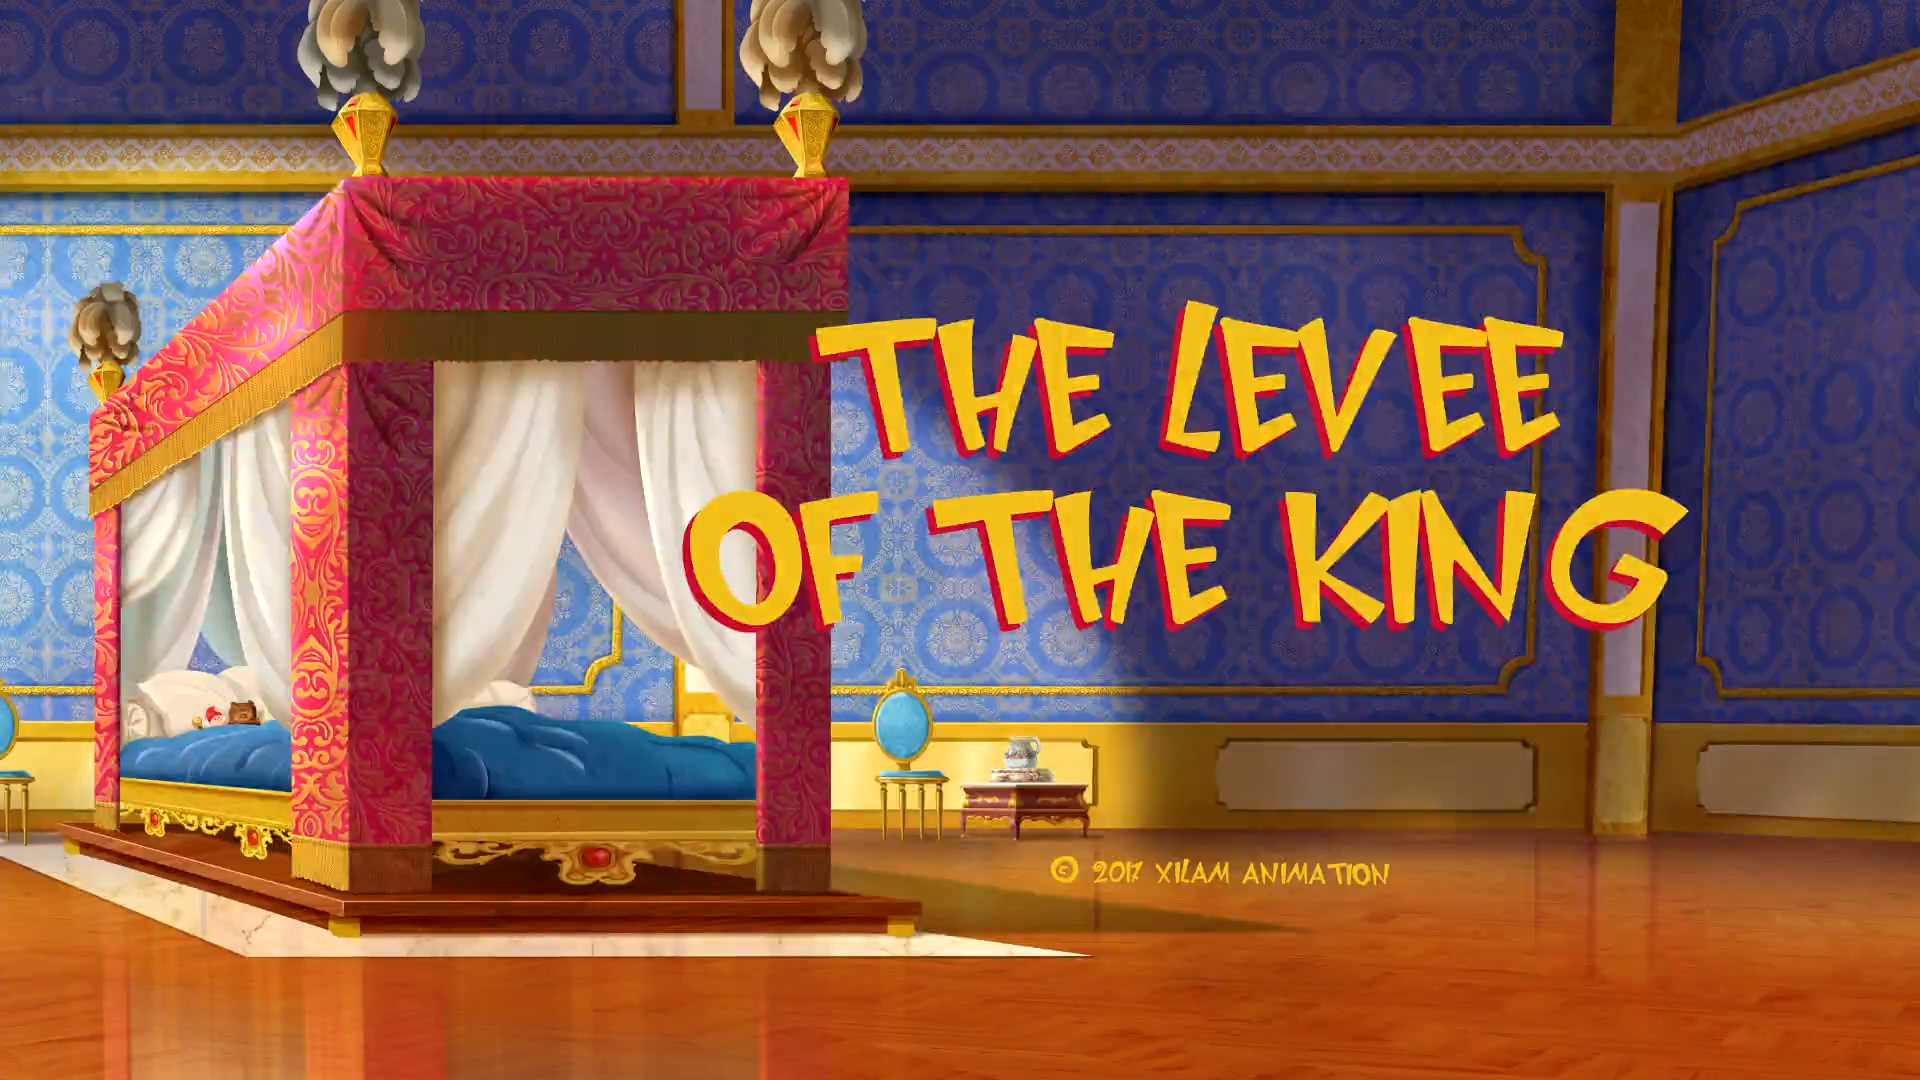 The Levee of the King